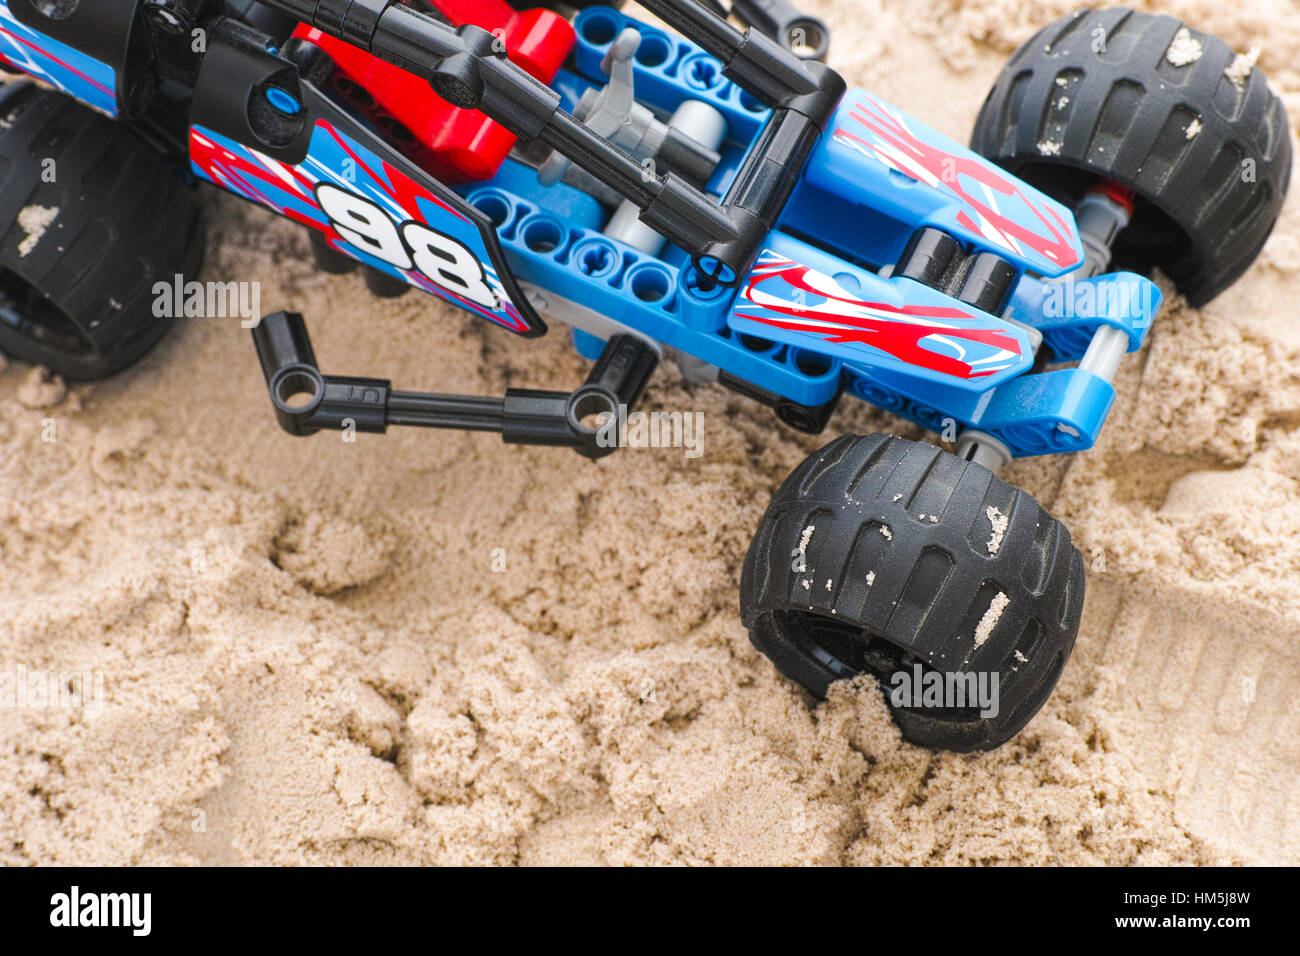 Tambov, Russian Federation - January 24, 2017 Lego Technic Off-road Racer on the sand. Some dust on the car. - Stock Image